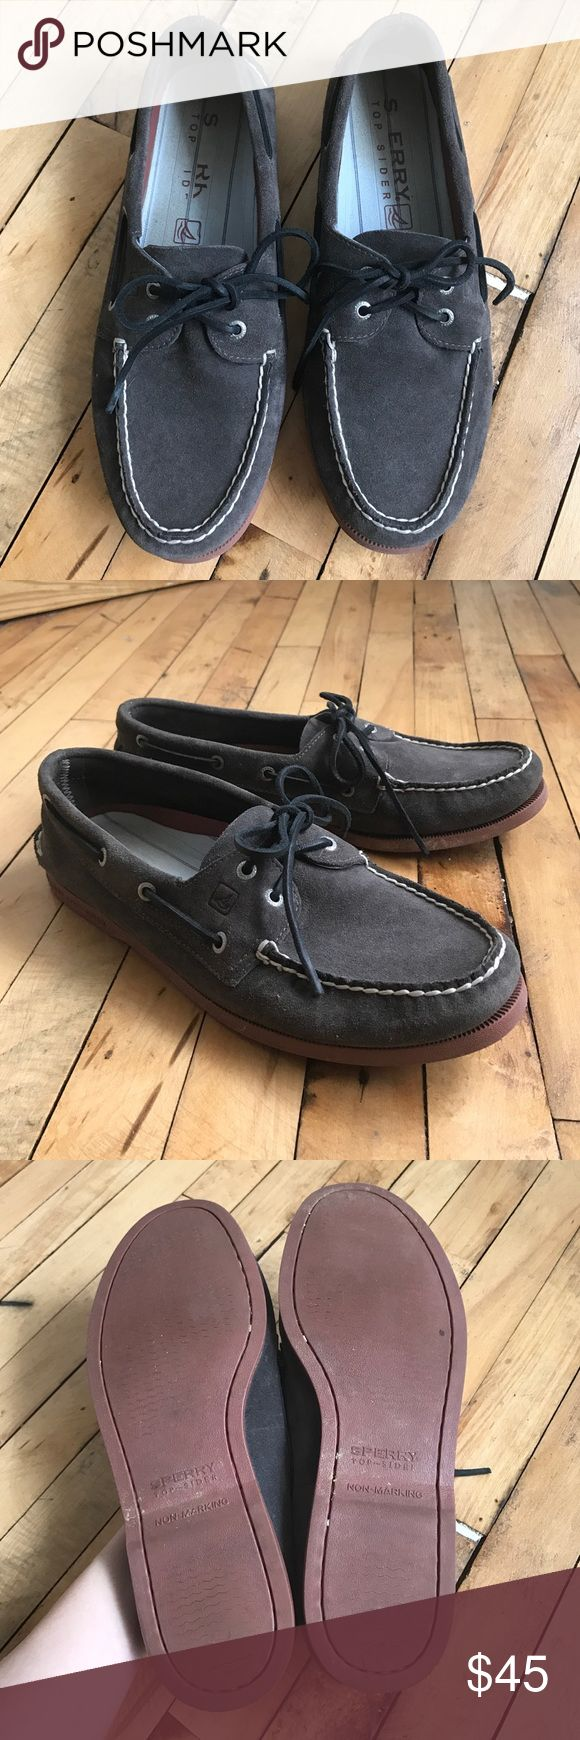 Sperry Topsider Men's Boat Shoes Grey Suede Worn only a couple times. Great condition. Sperry Top-Sider Shoes Boat Shoes